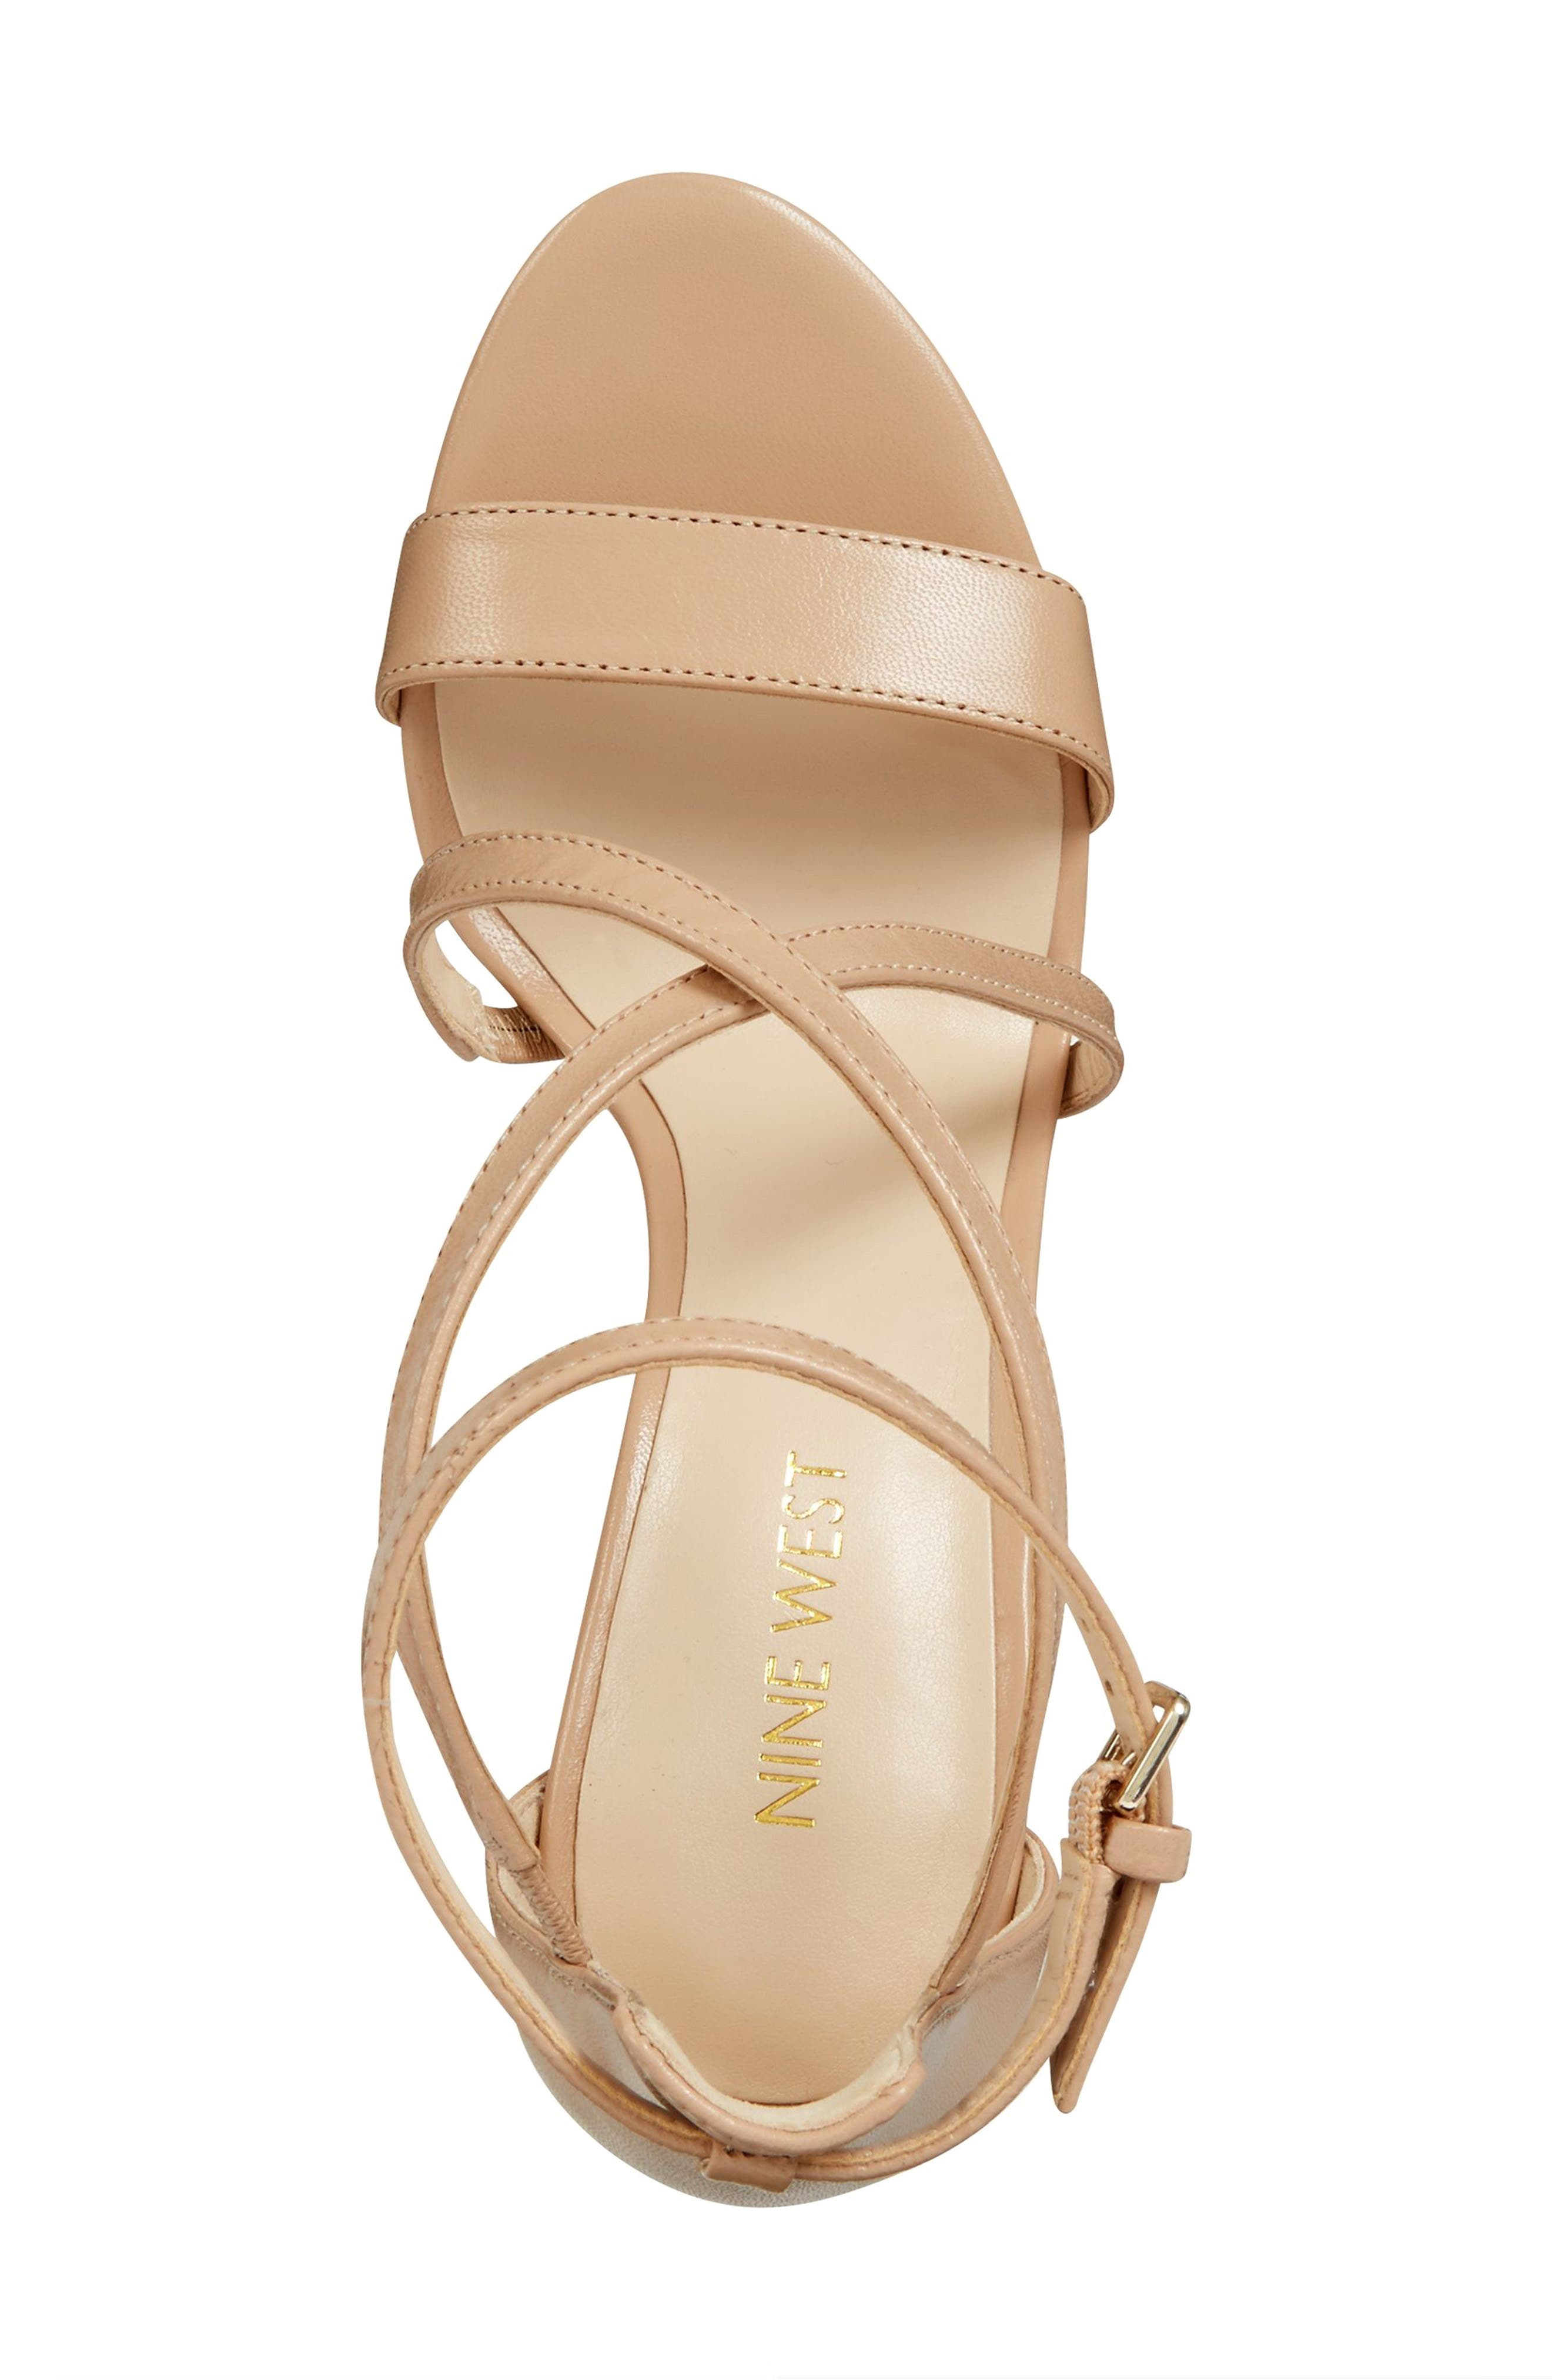 Retail Therapy Strappy Sandal,                             Alternate thumbnail 5, color,                             NATURAL LEATHER